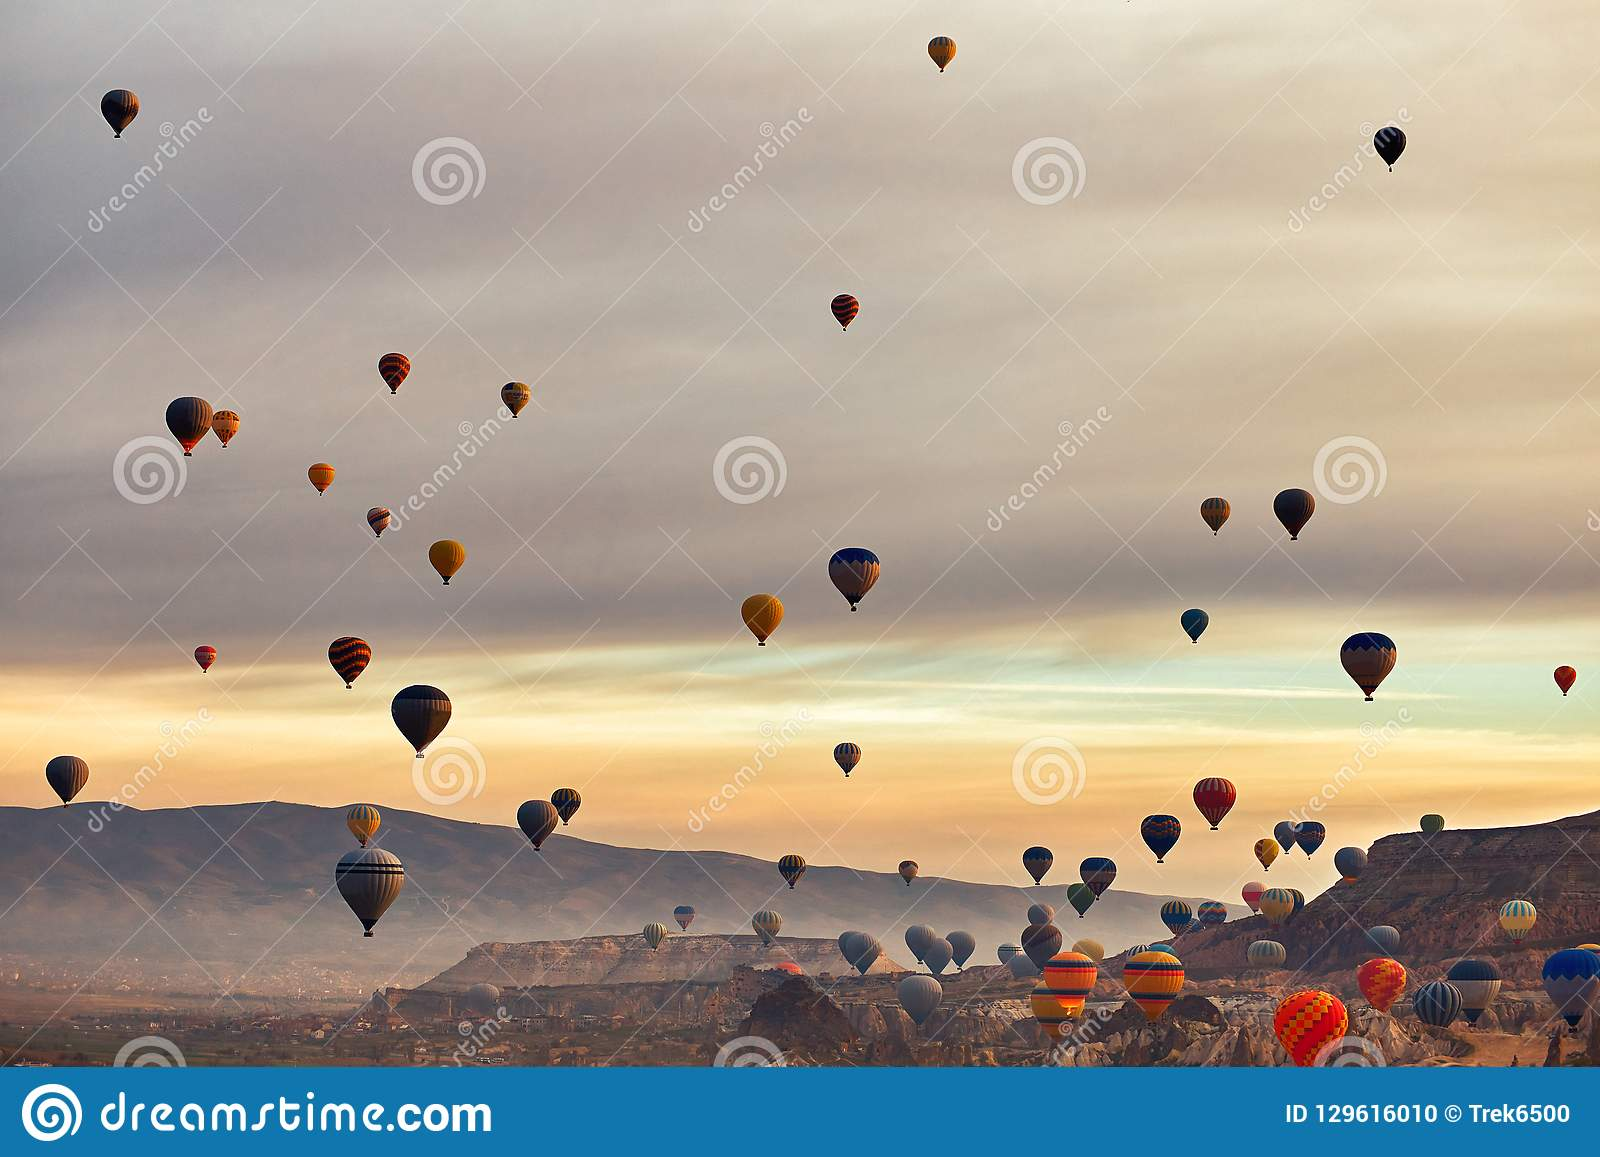 Mountain landscape with large balloons in a short summer season